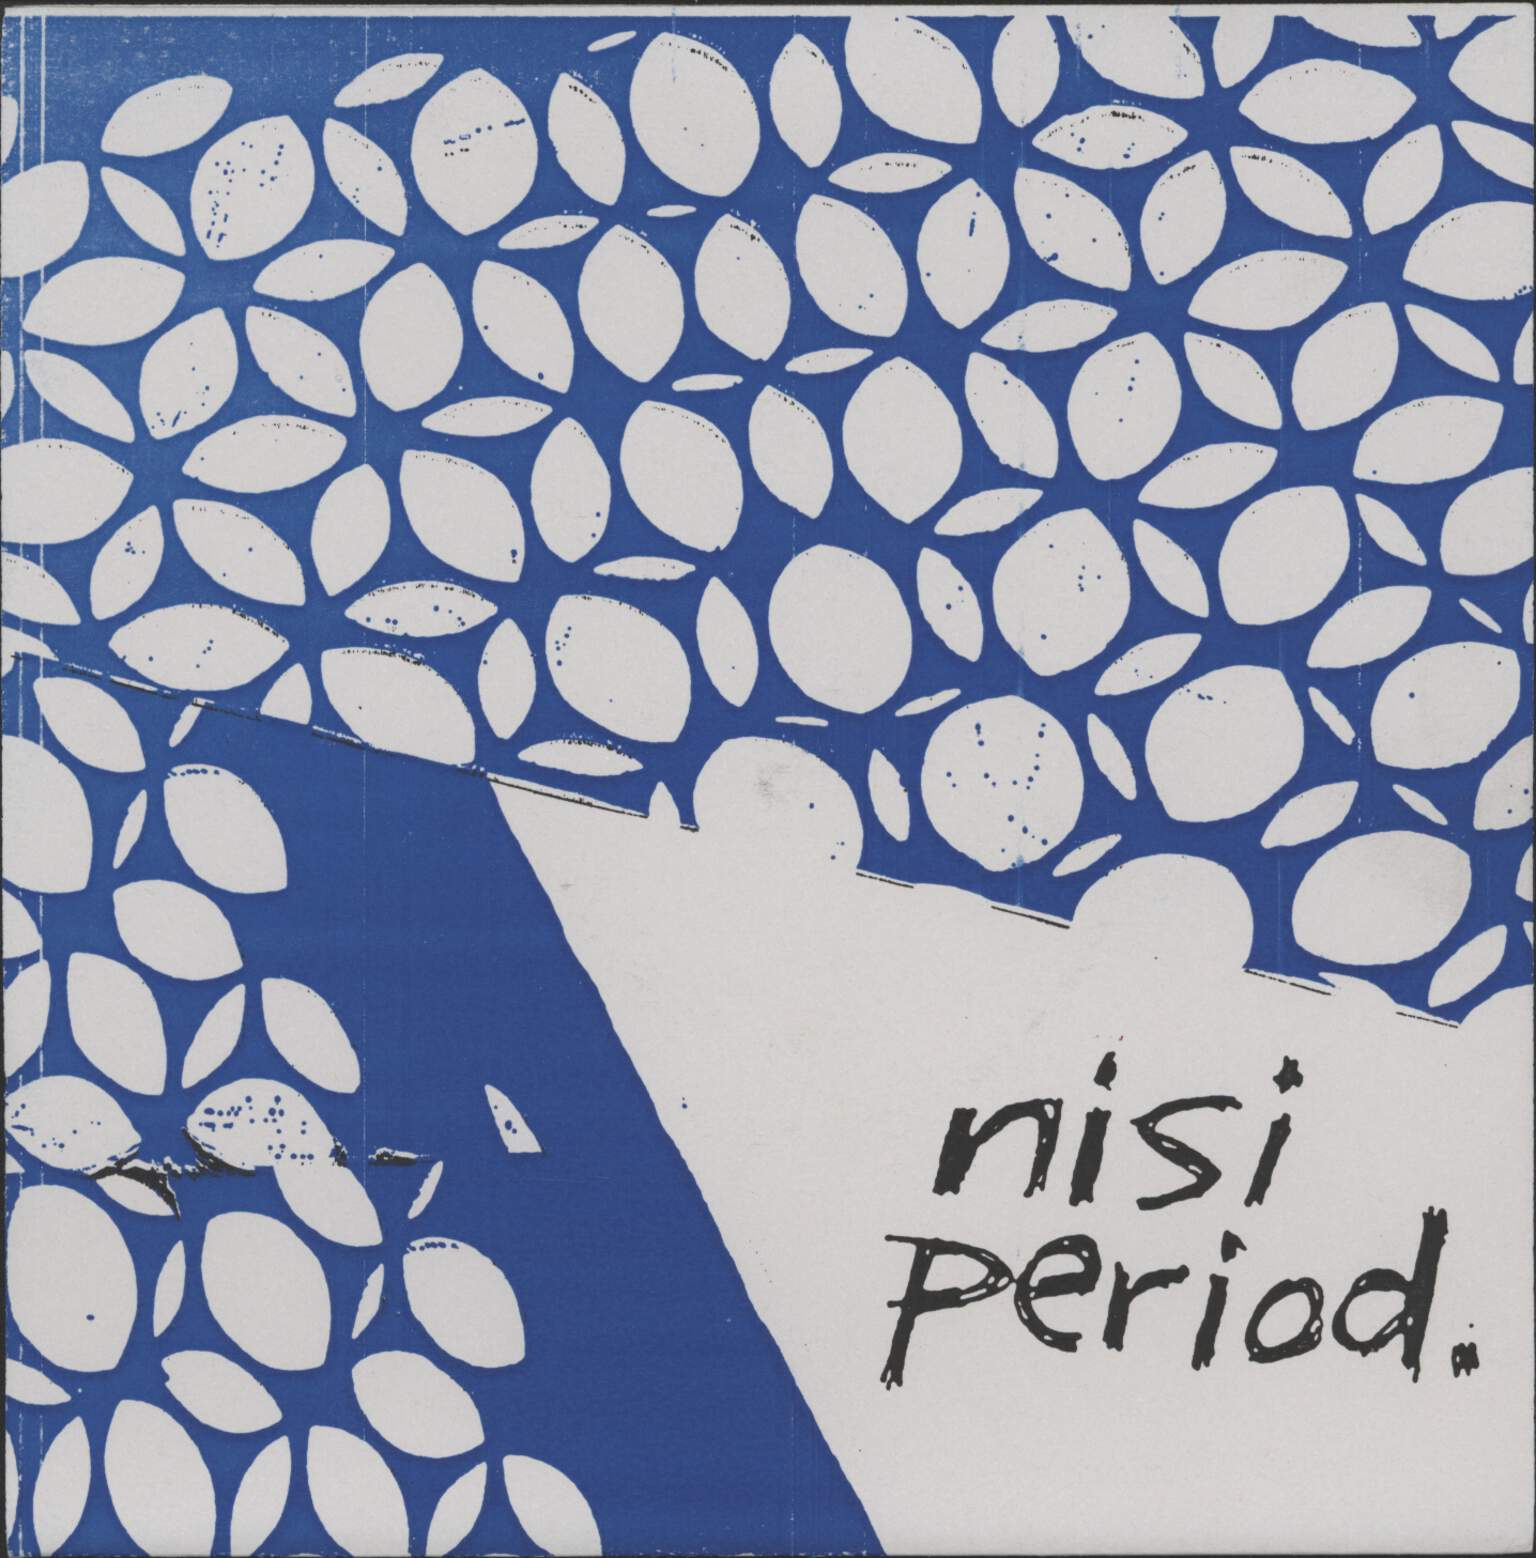 "Nisi Period: Backbone Salad / Want You Green, 7"" Single (Vinyl)"